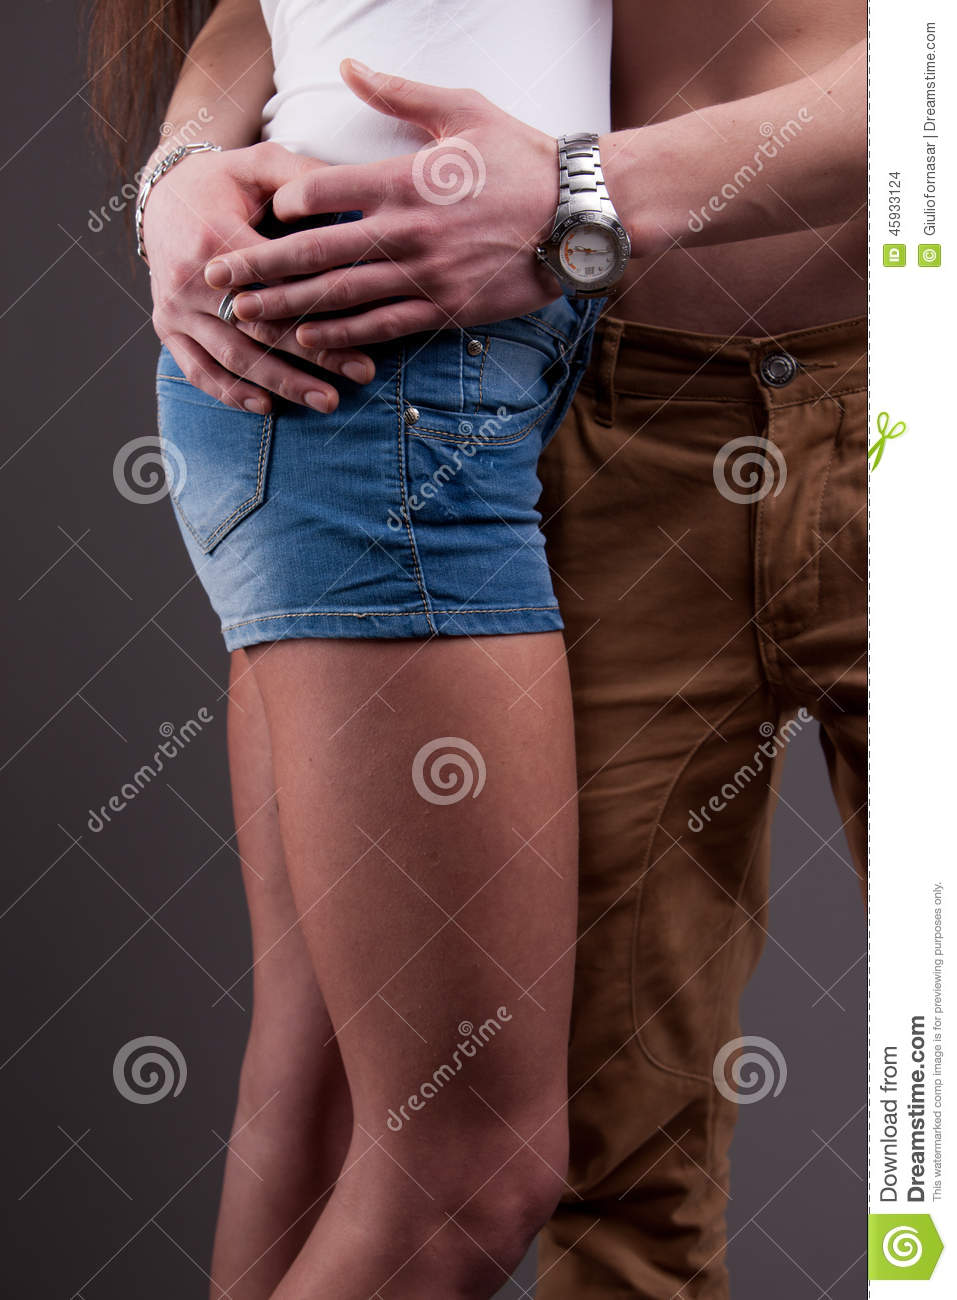 Girl with hand in mans pants